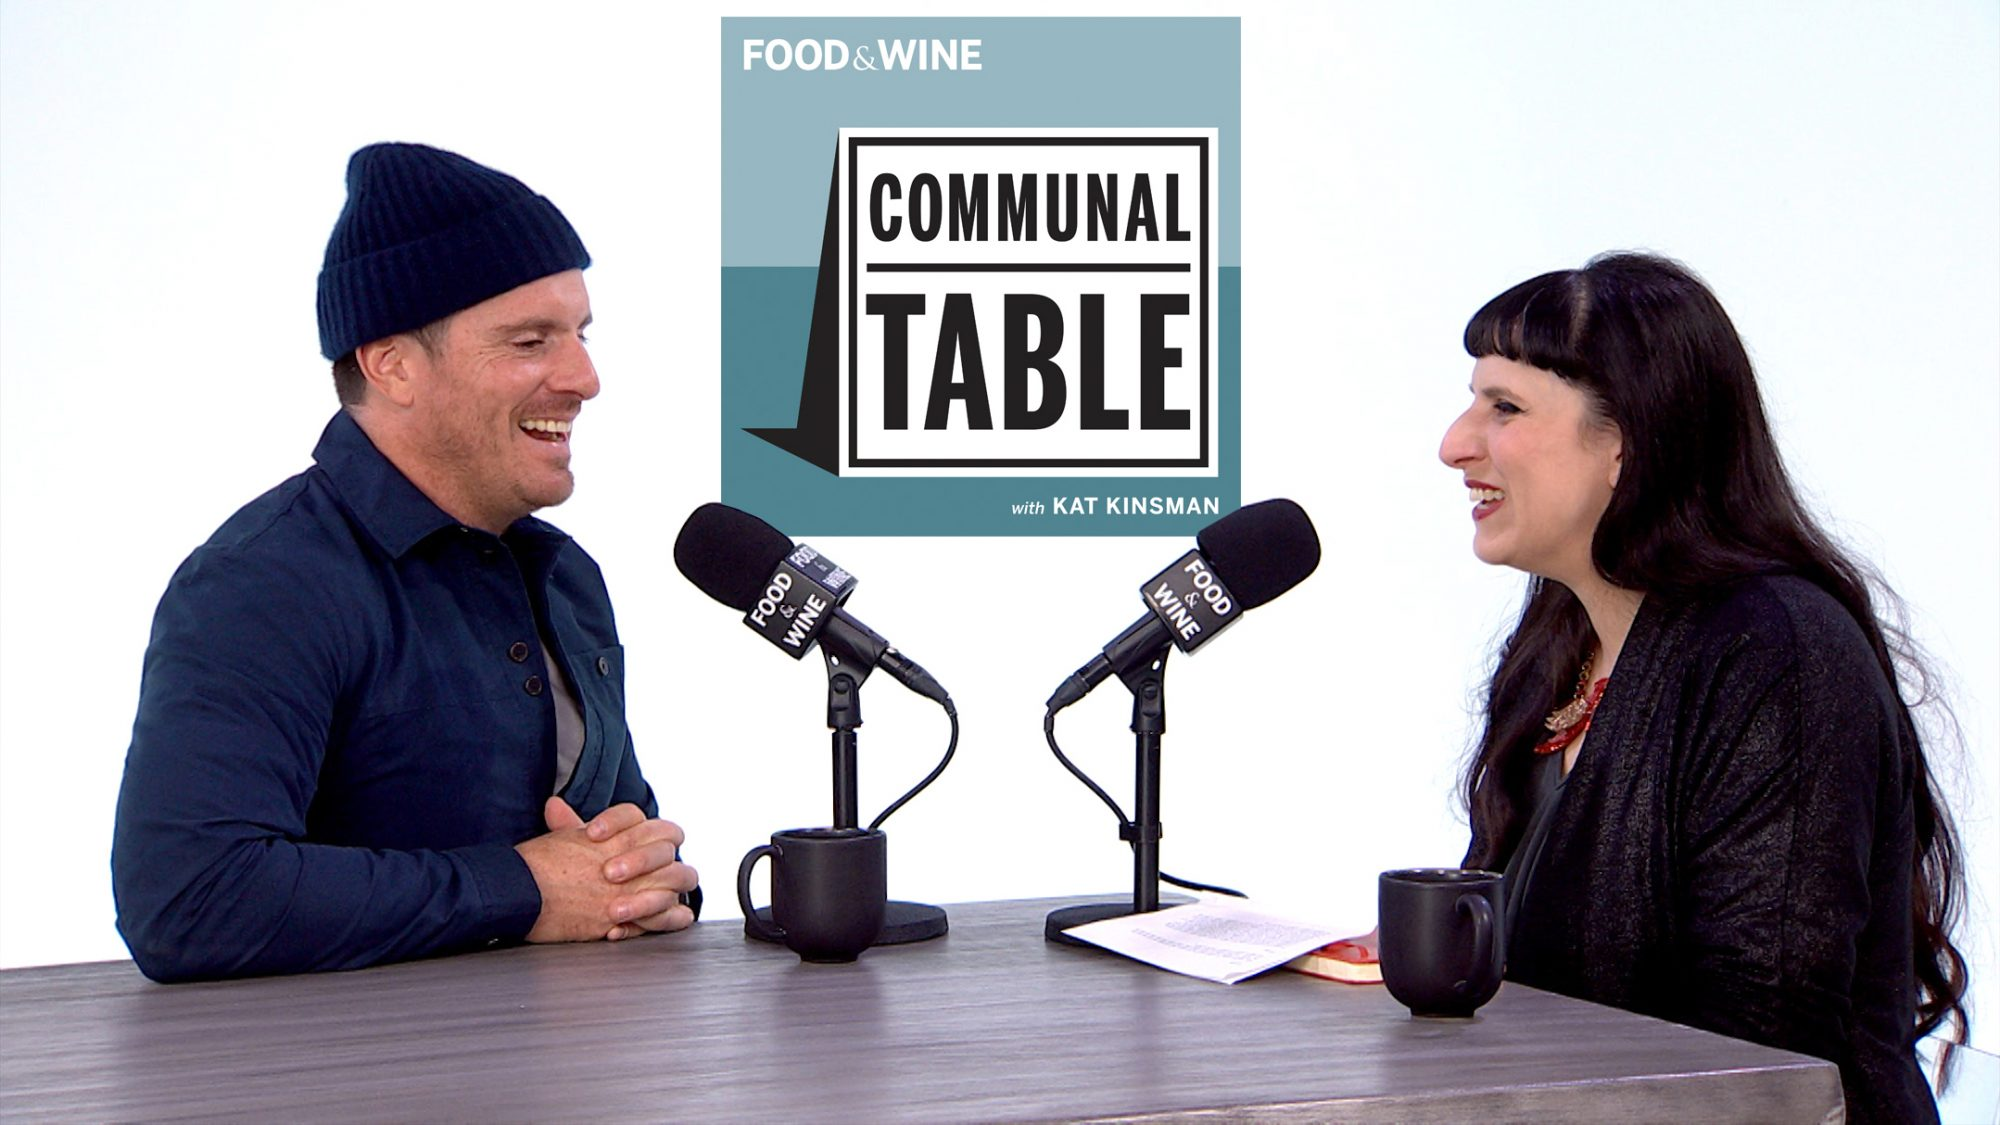 Communal Table Podcast: Seamus Mullen